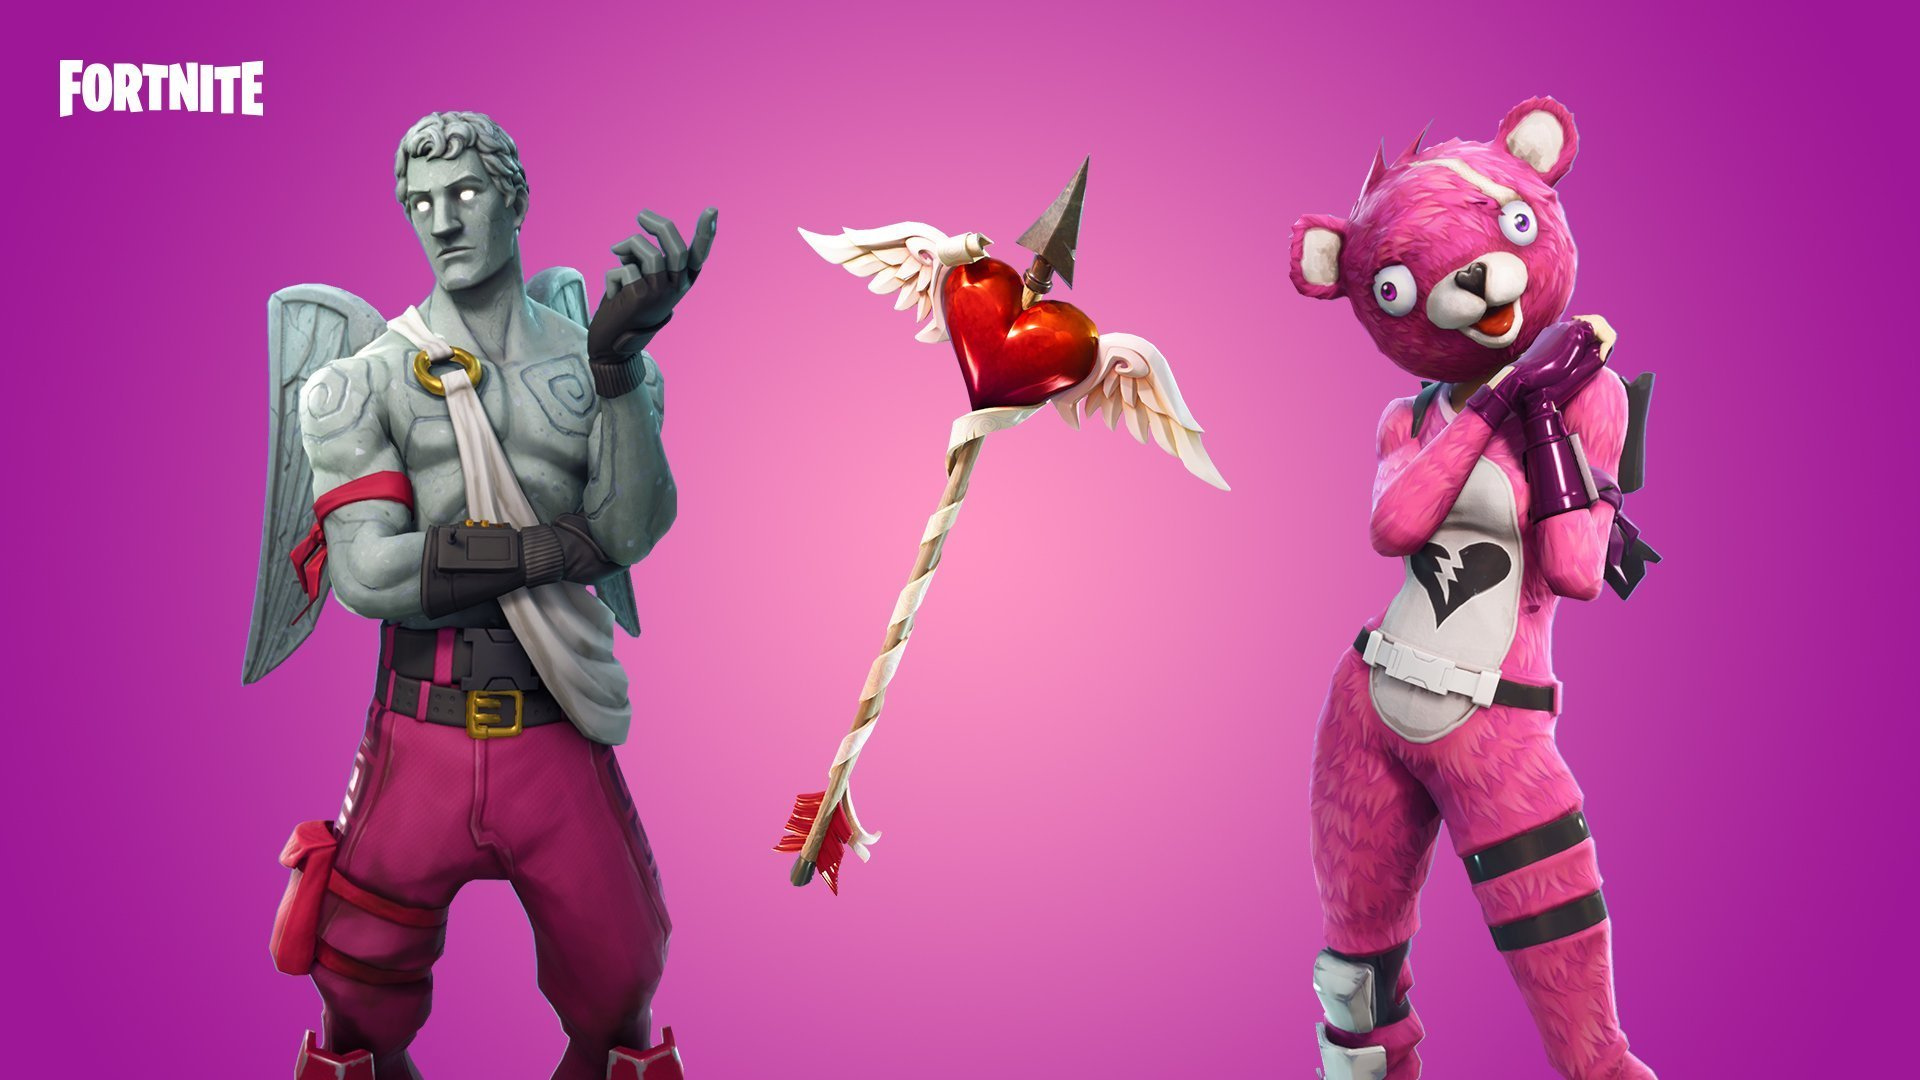 Fortnite Love Ranger Outfits   Fortnite Skins 1920x1080